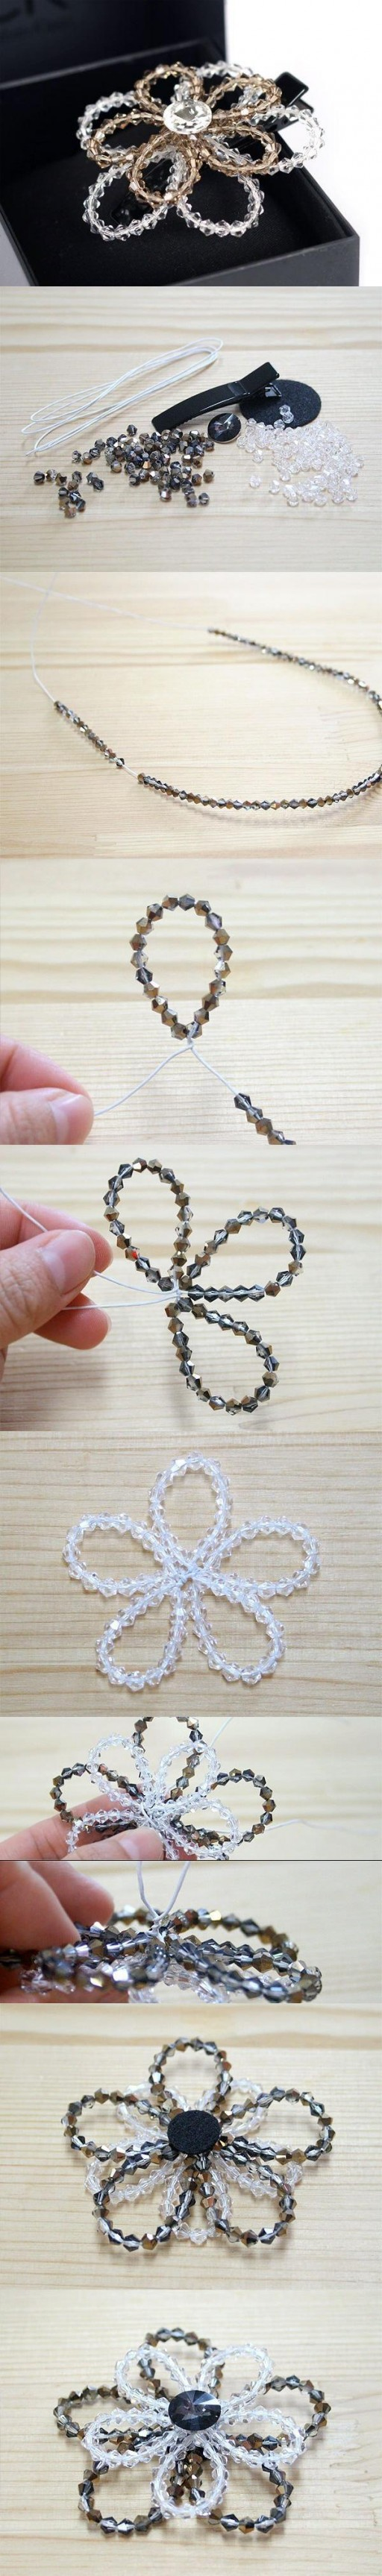 How to make Beaded Crystal Flower step by step DIY tutorial instructions